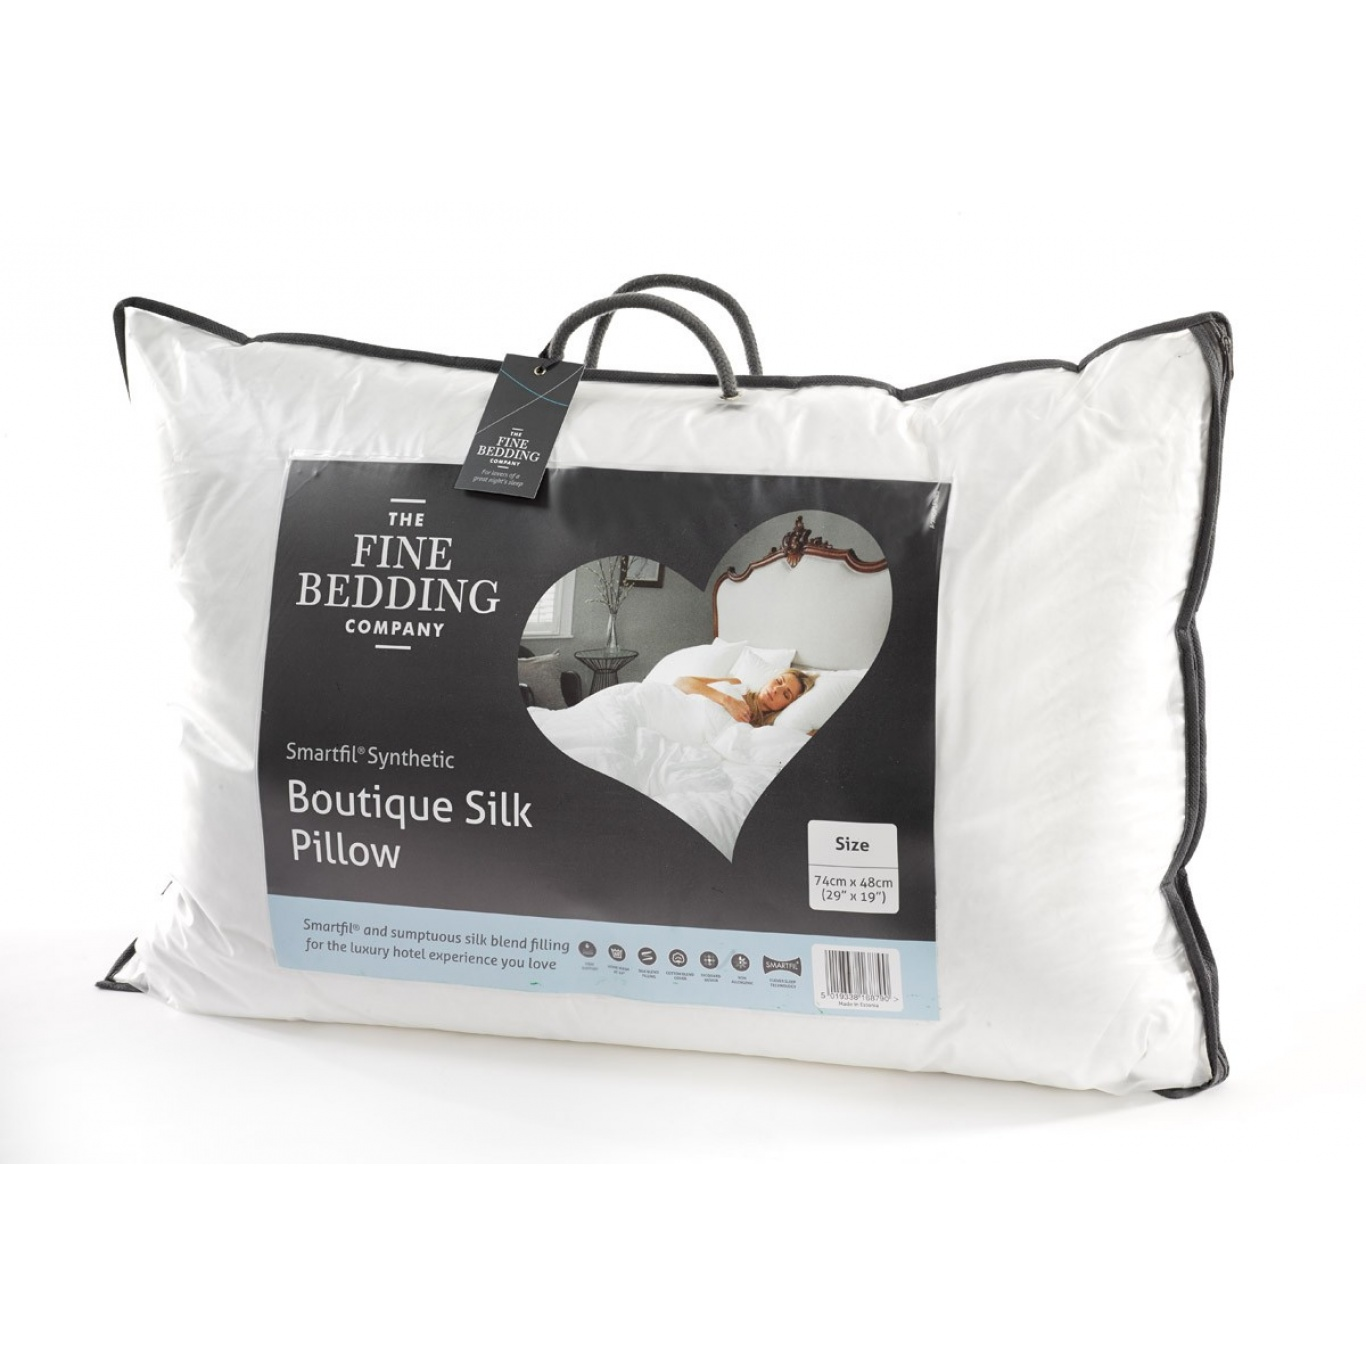 Image of Boutique Silk Pillow